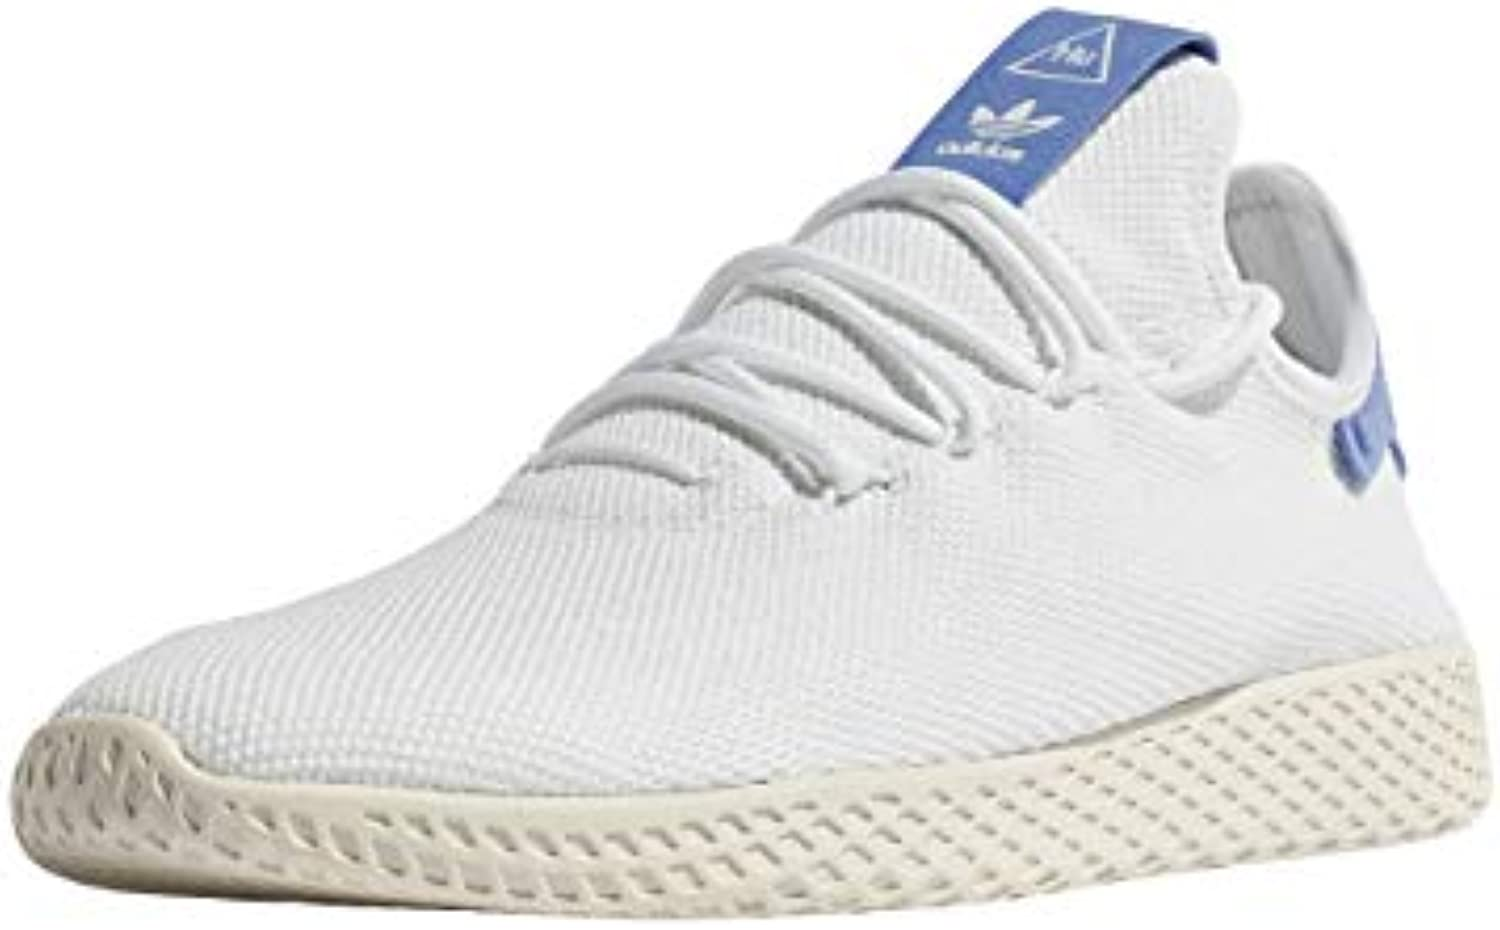 Adidas Originals Uomo Scarpe scarpe da da da ginnastica PW Tennis HU | The King Of Quantità